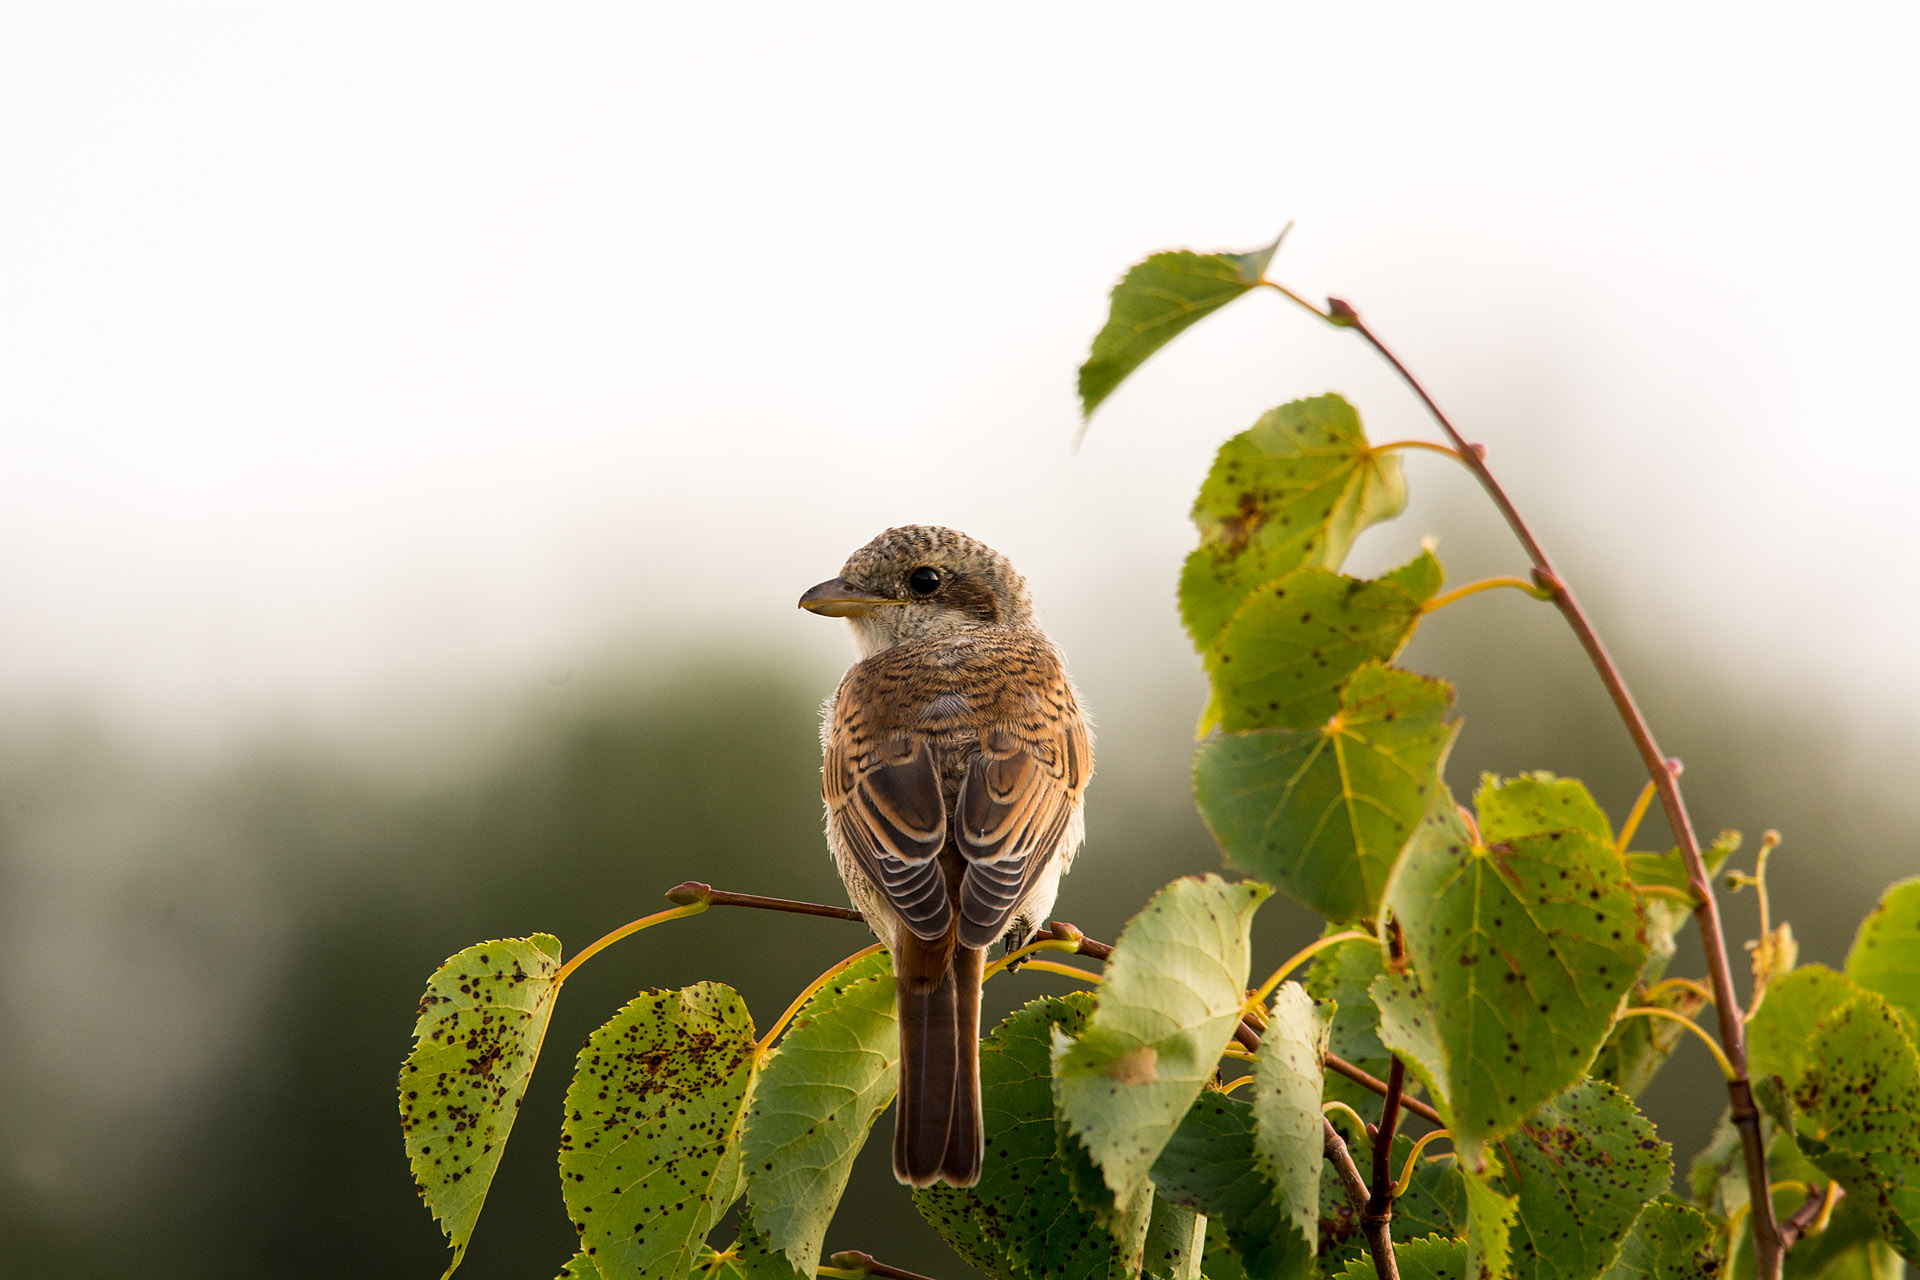 Red-backed shrike (immature)